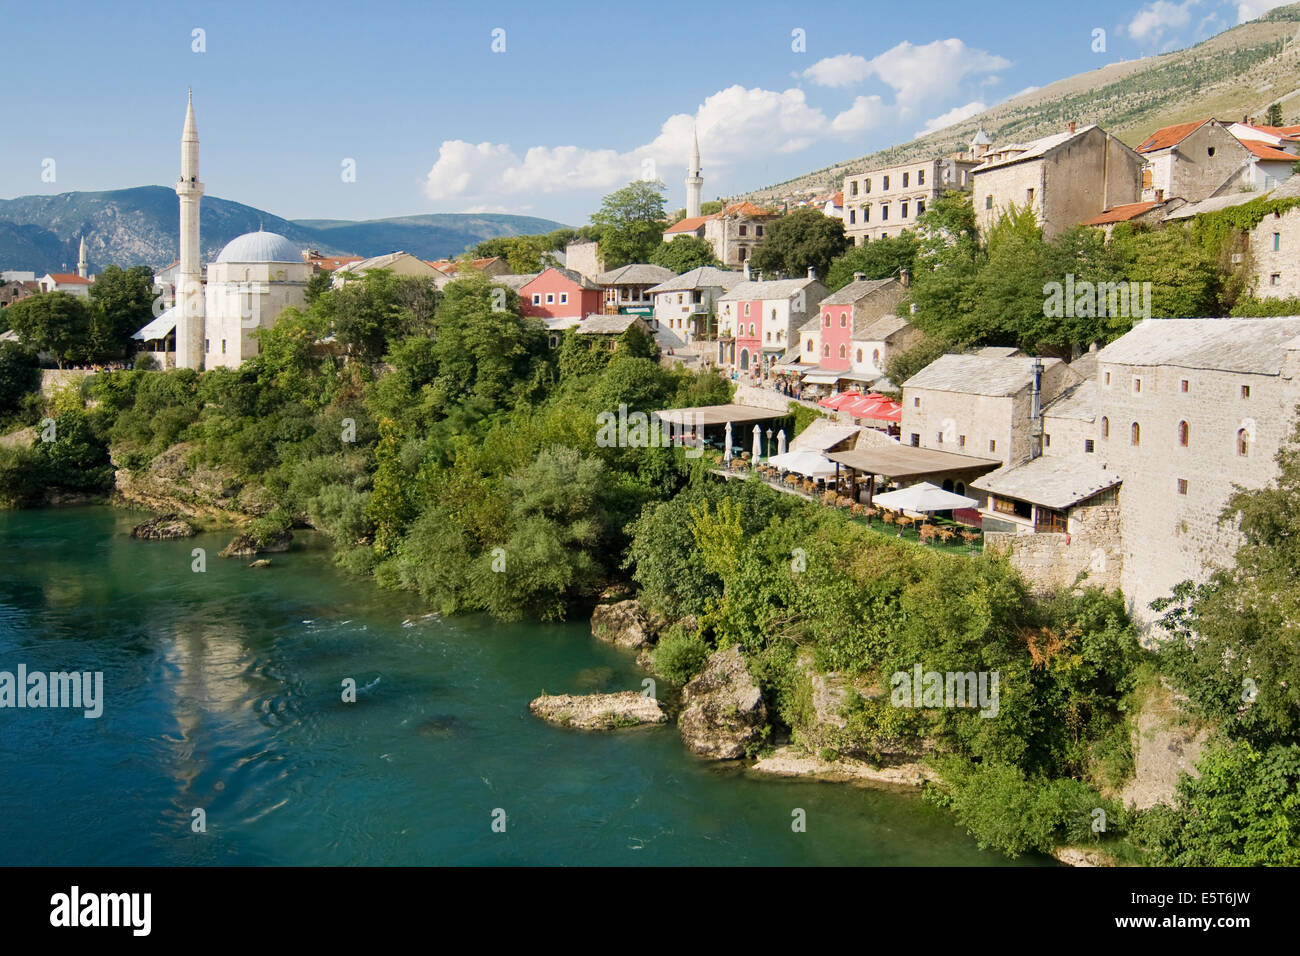 Old town of Mostar and Neretva river from the Old Bridge (Stari Most), Bosnia and Herzegovina. - Stock Image